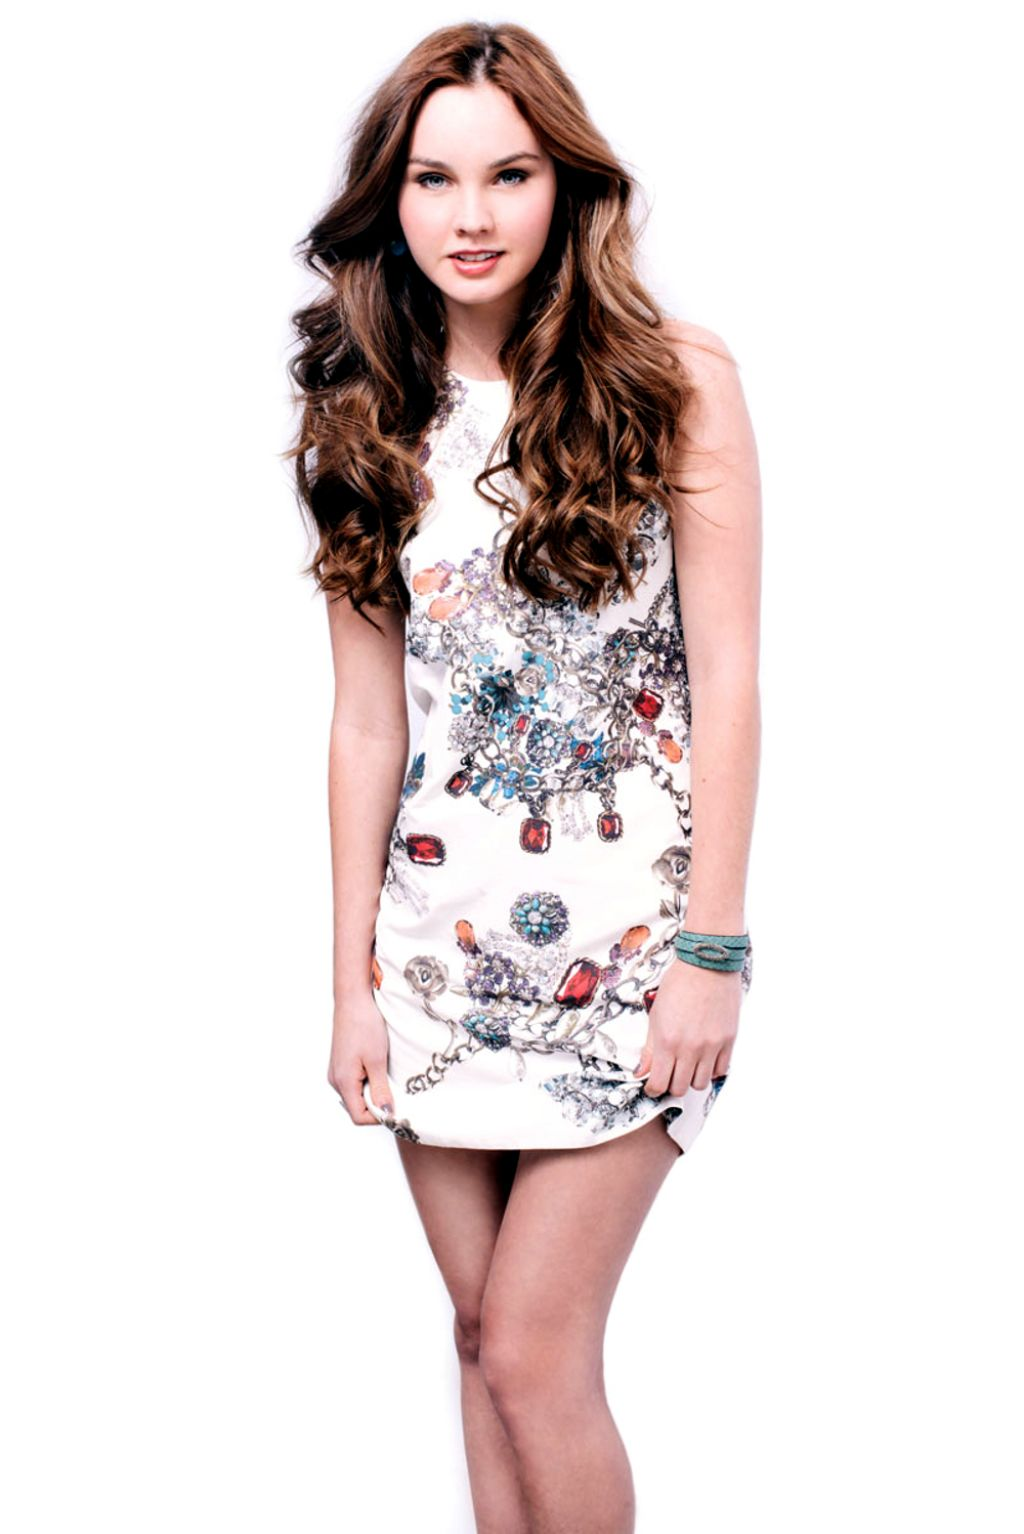 Liana Liberato Verge Magazine 2013 December Issue